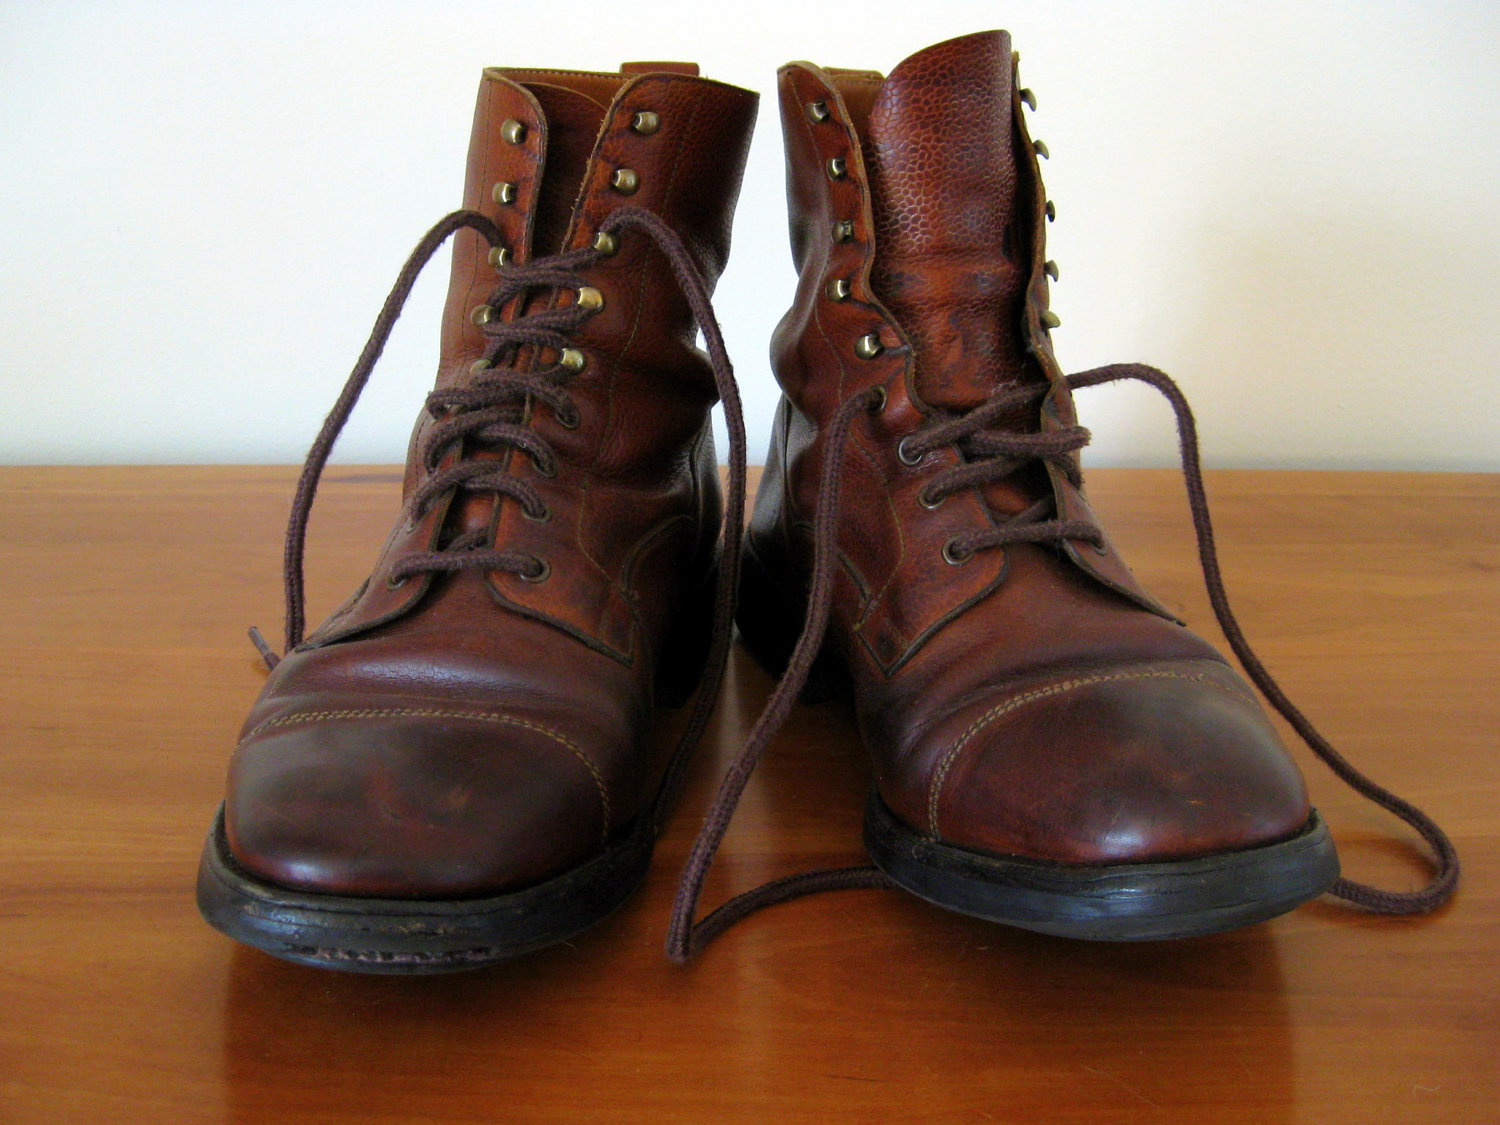 Completely new Vintage Mens Boots - Boot Yc II16